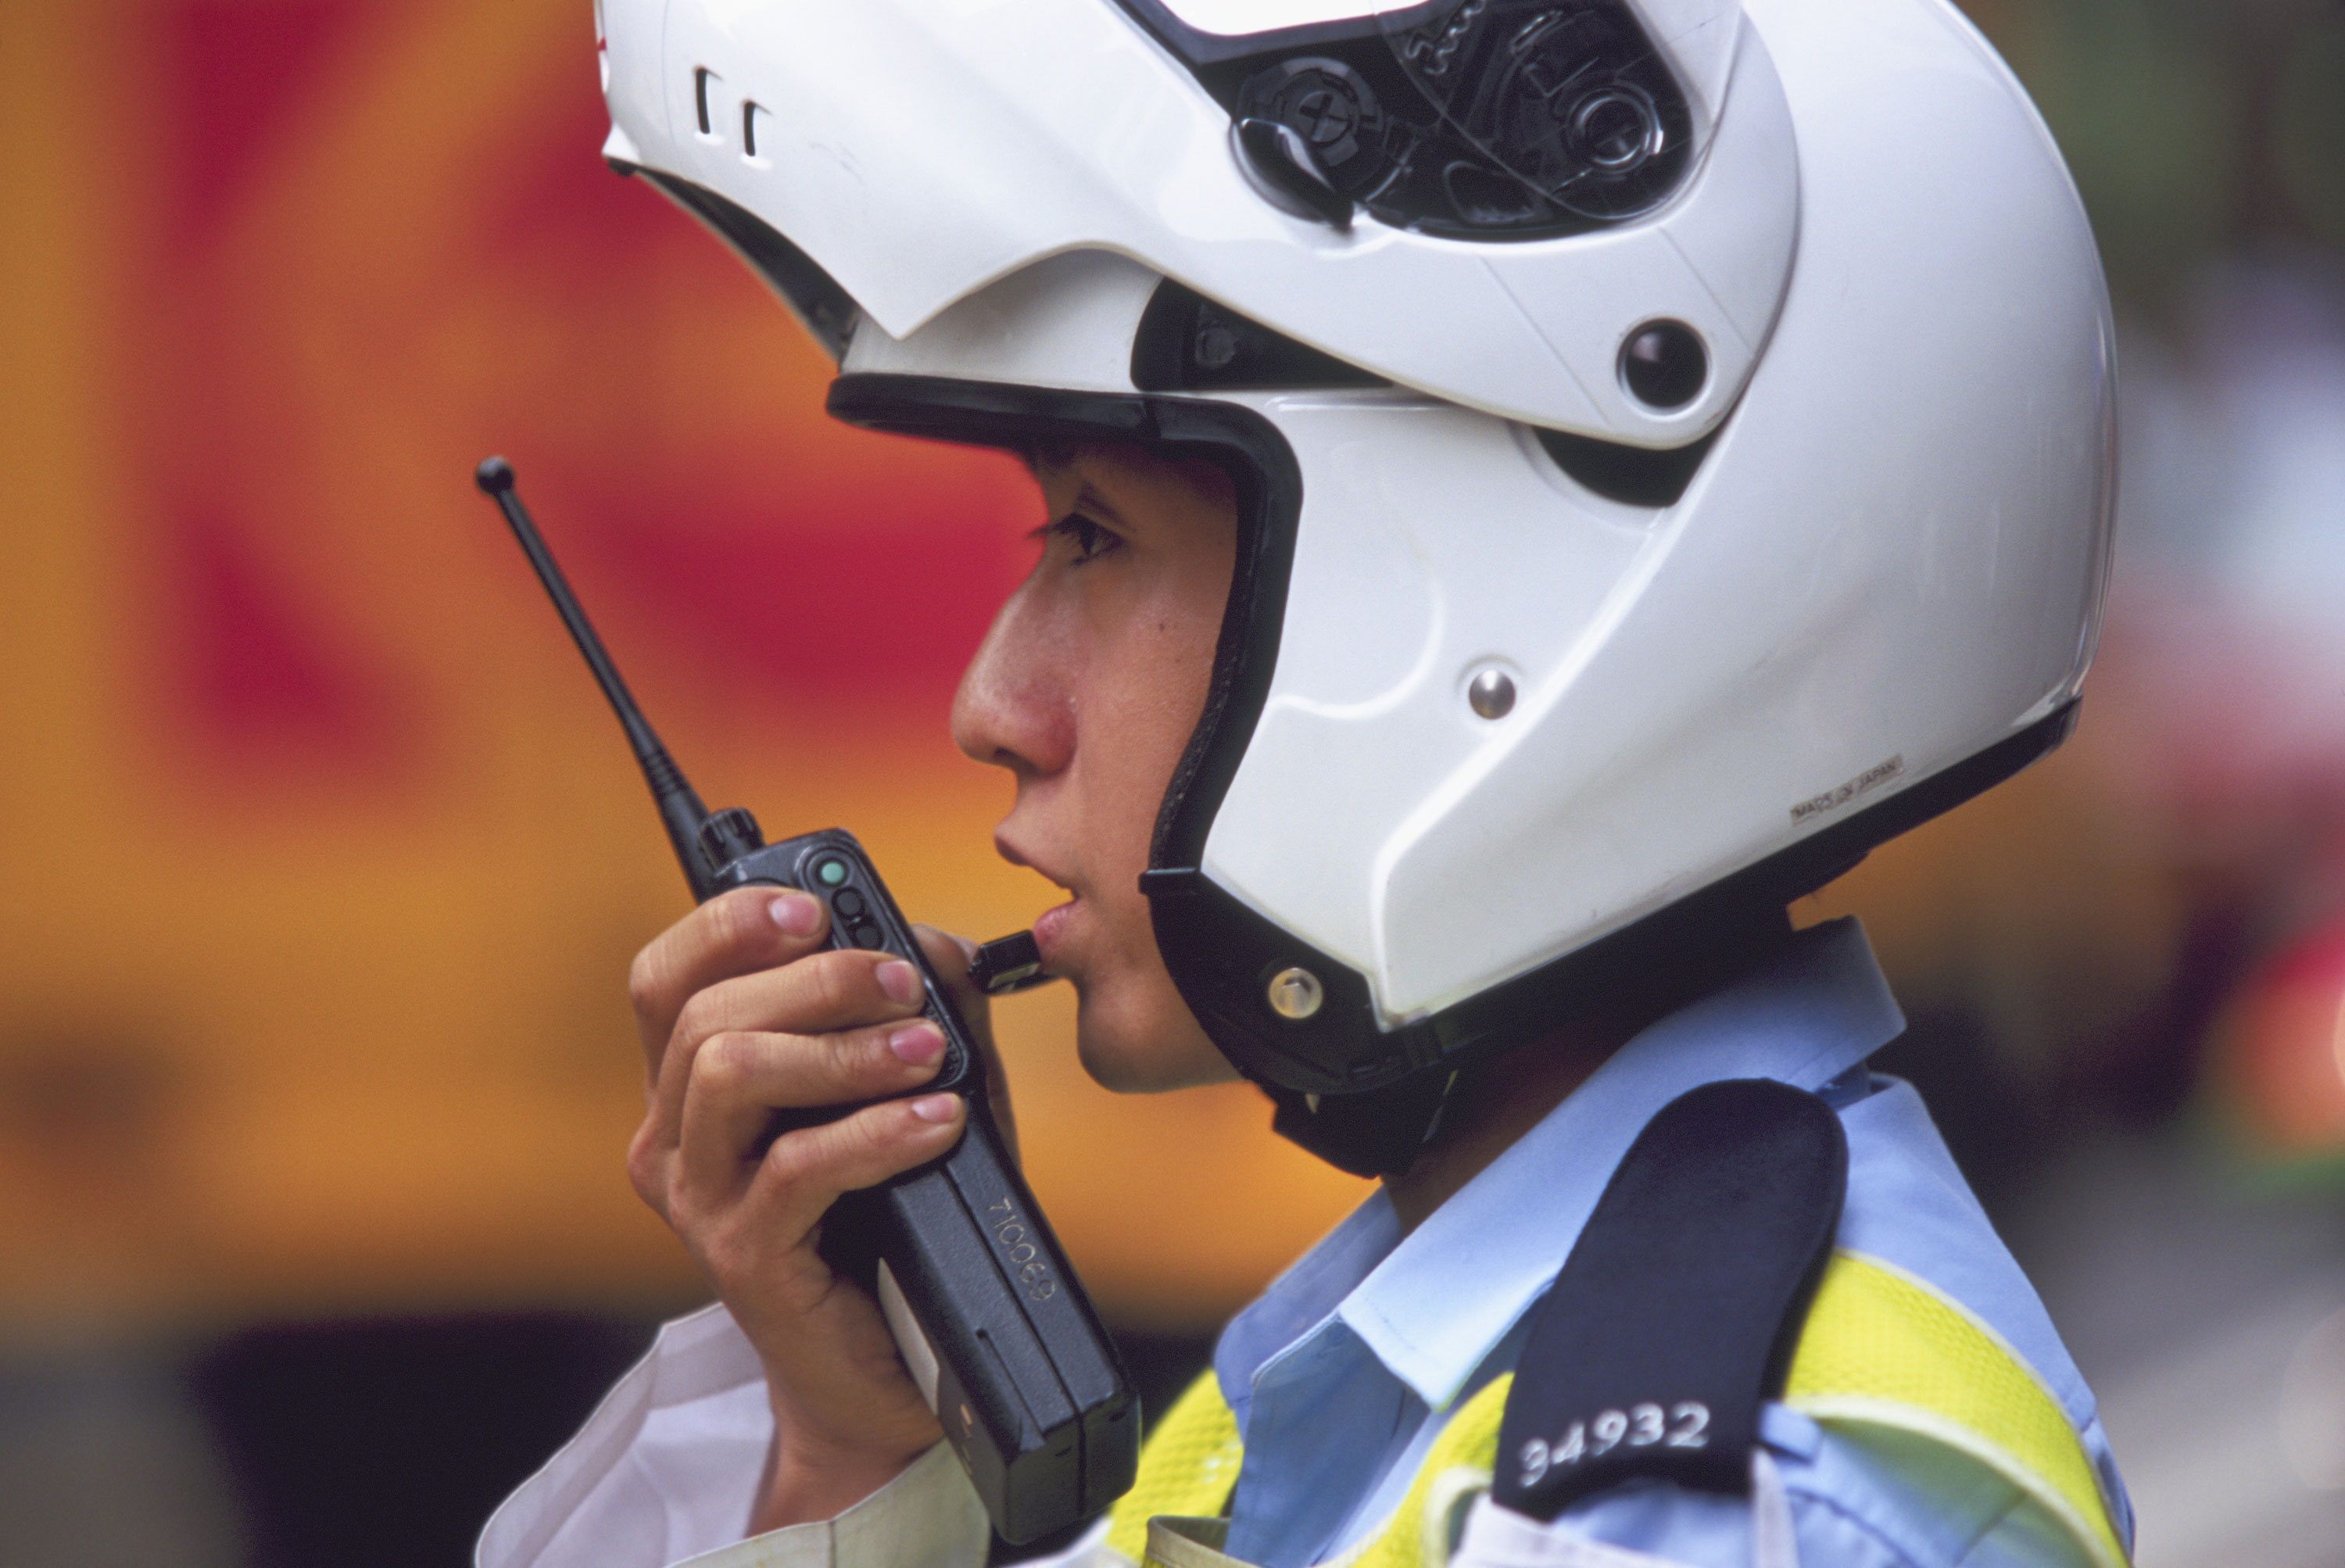 How Walkie-talkies Work